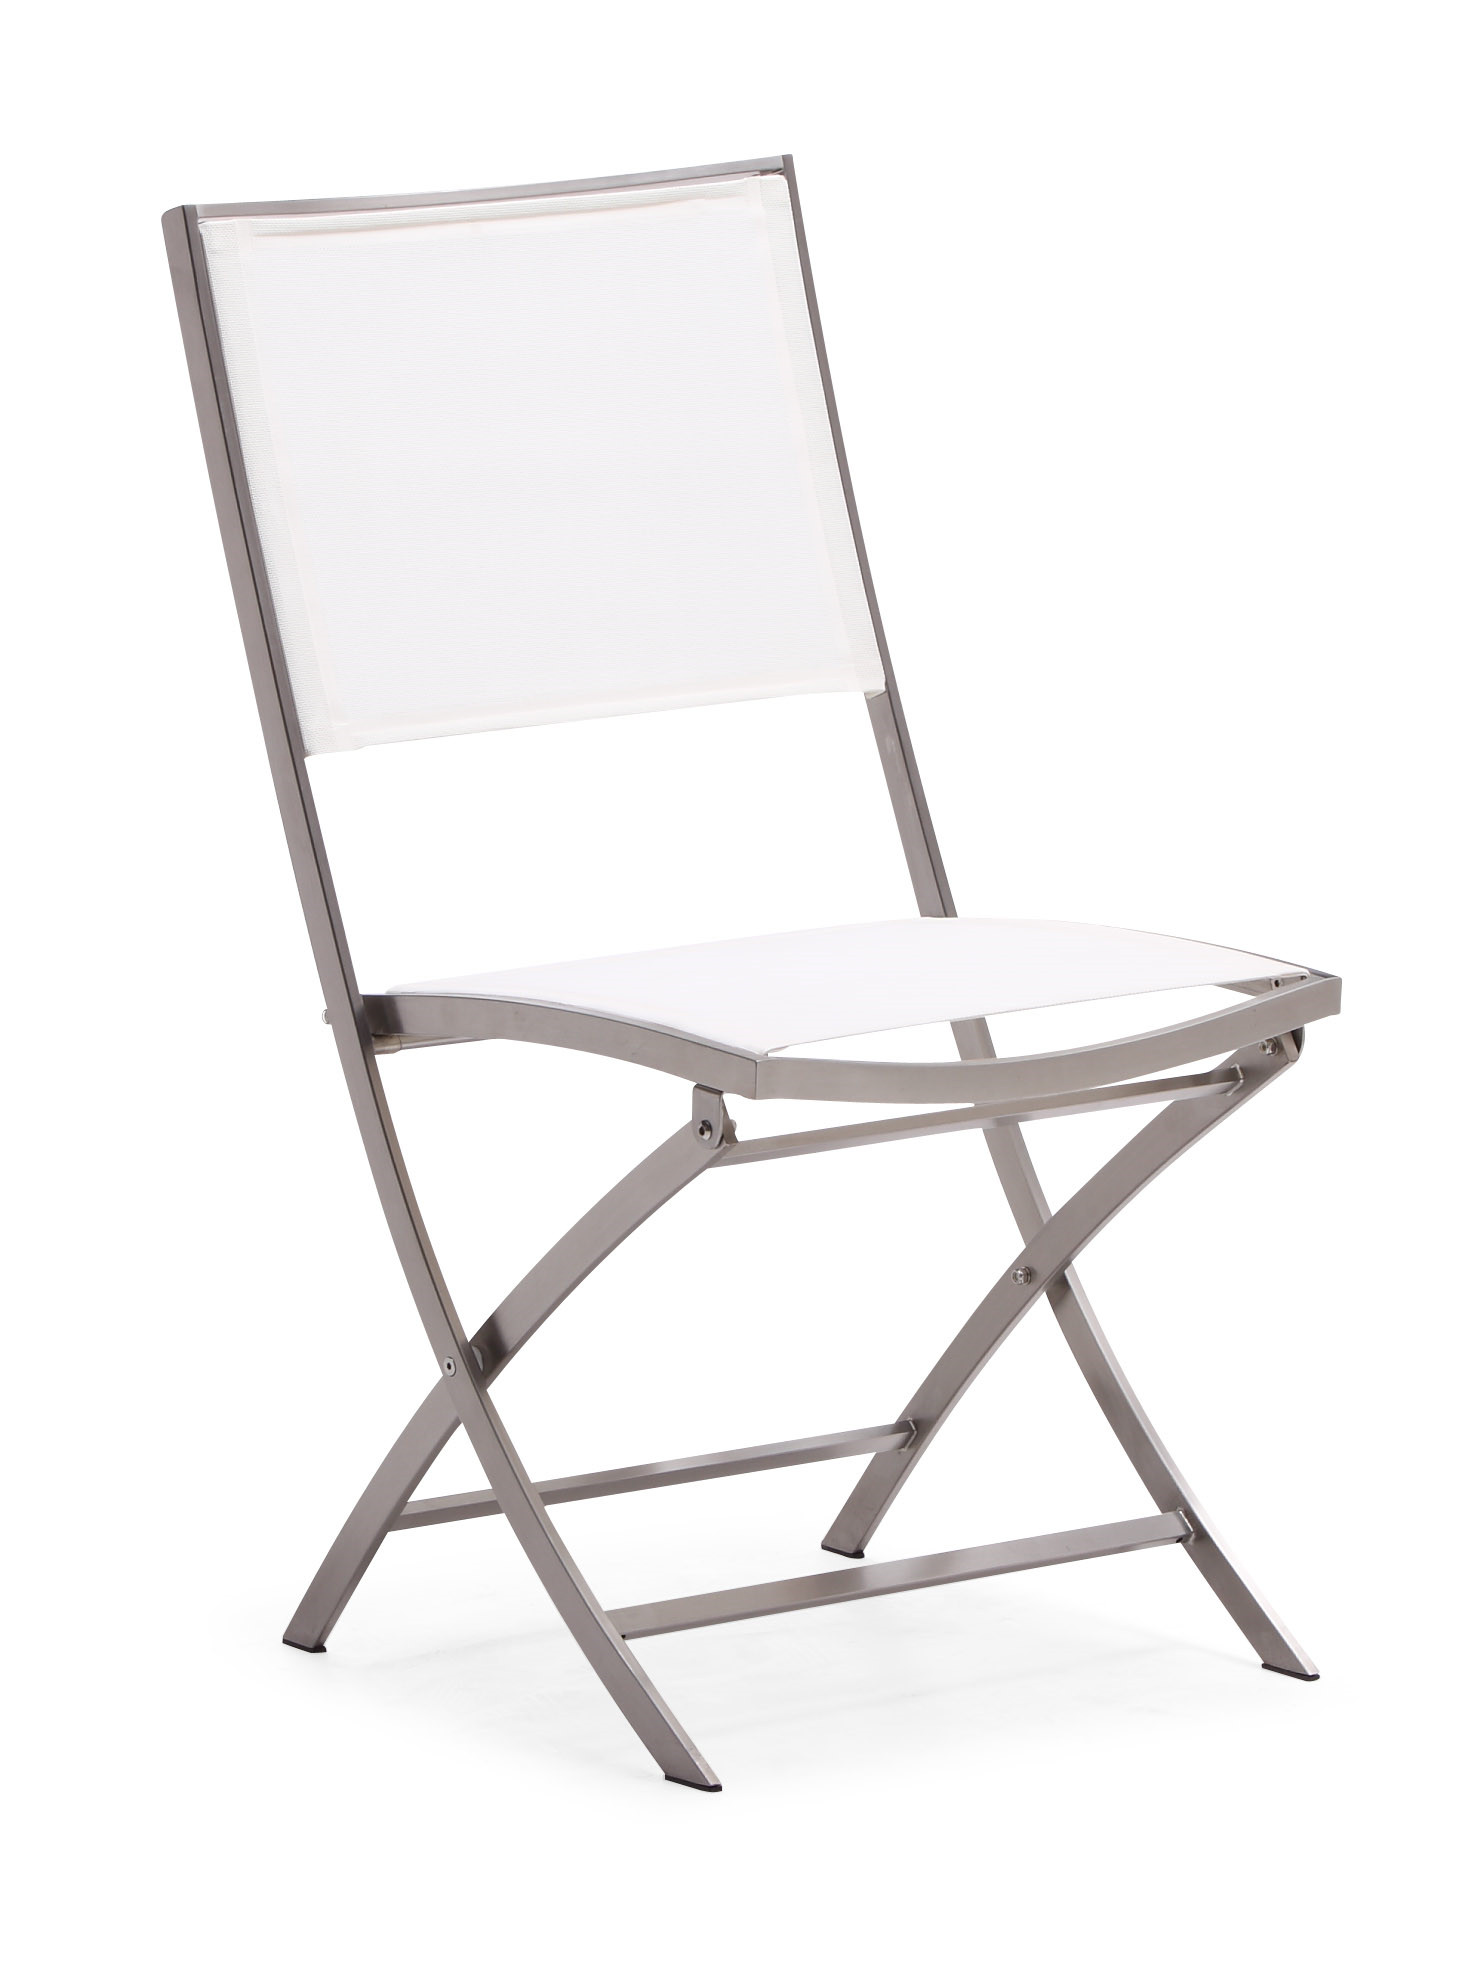 Patio folding chair stainless steel garden chair (Y064B)